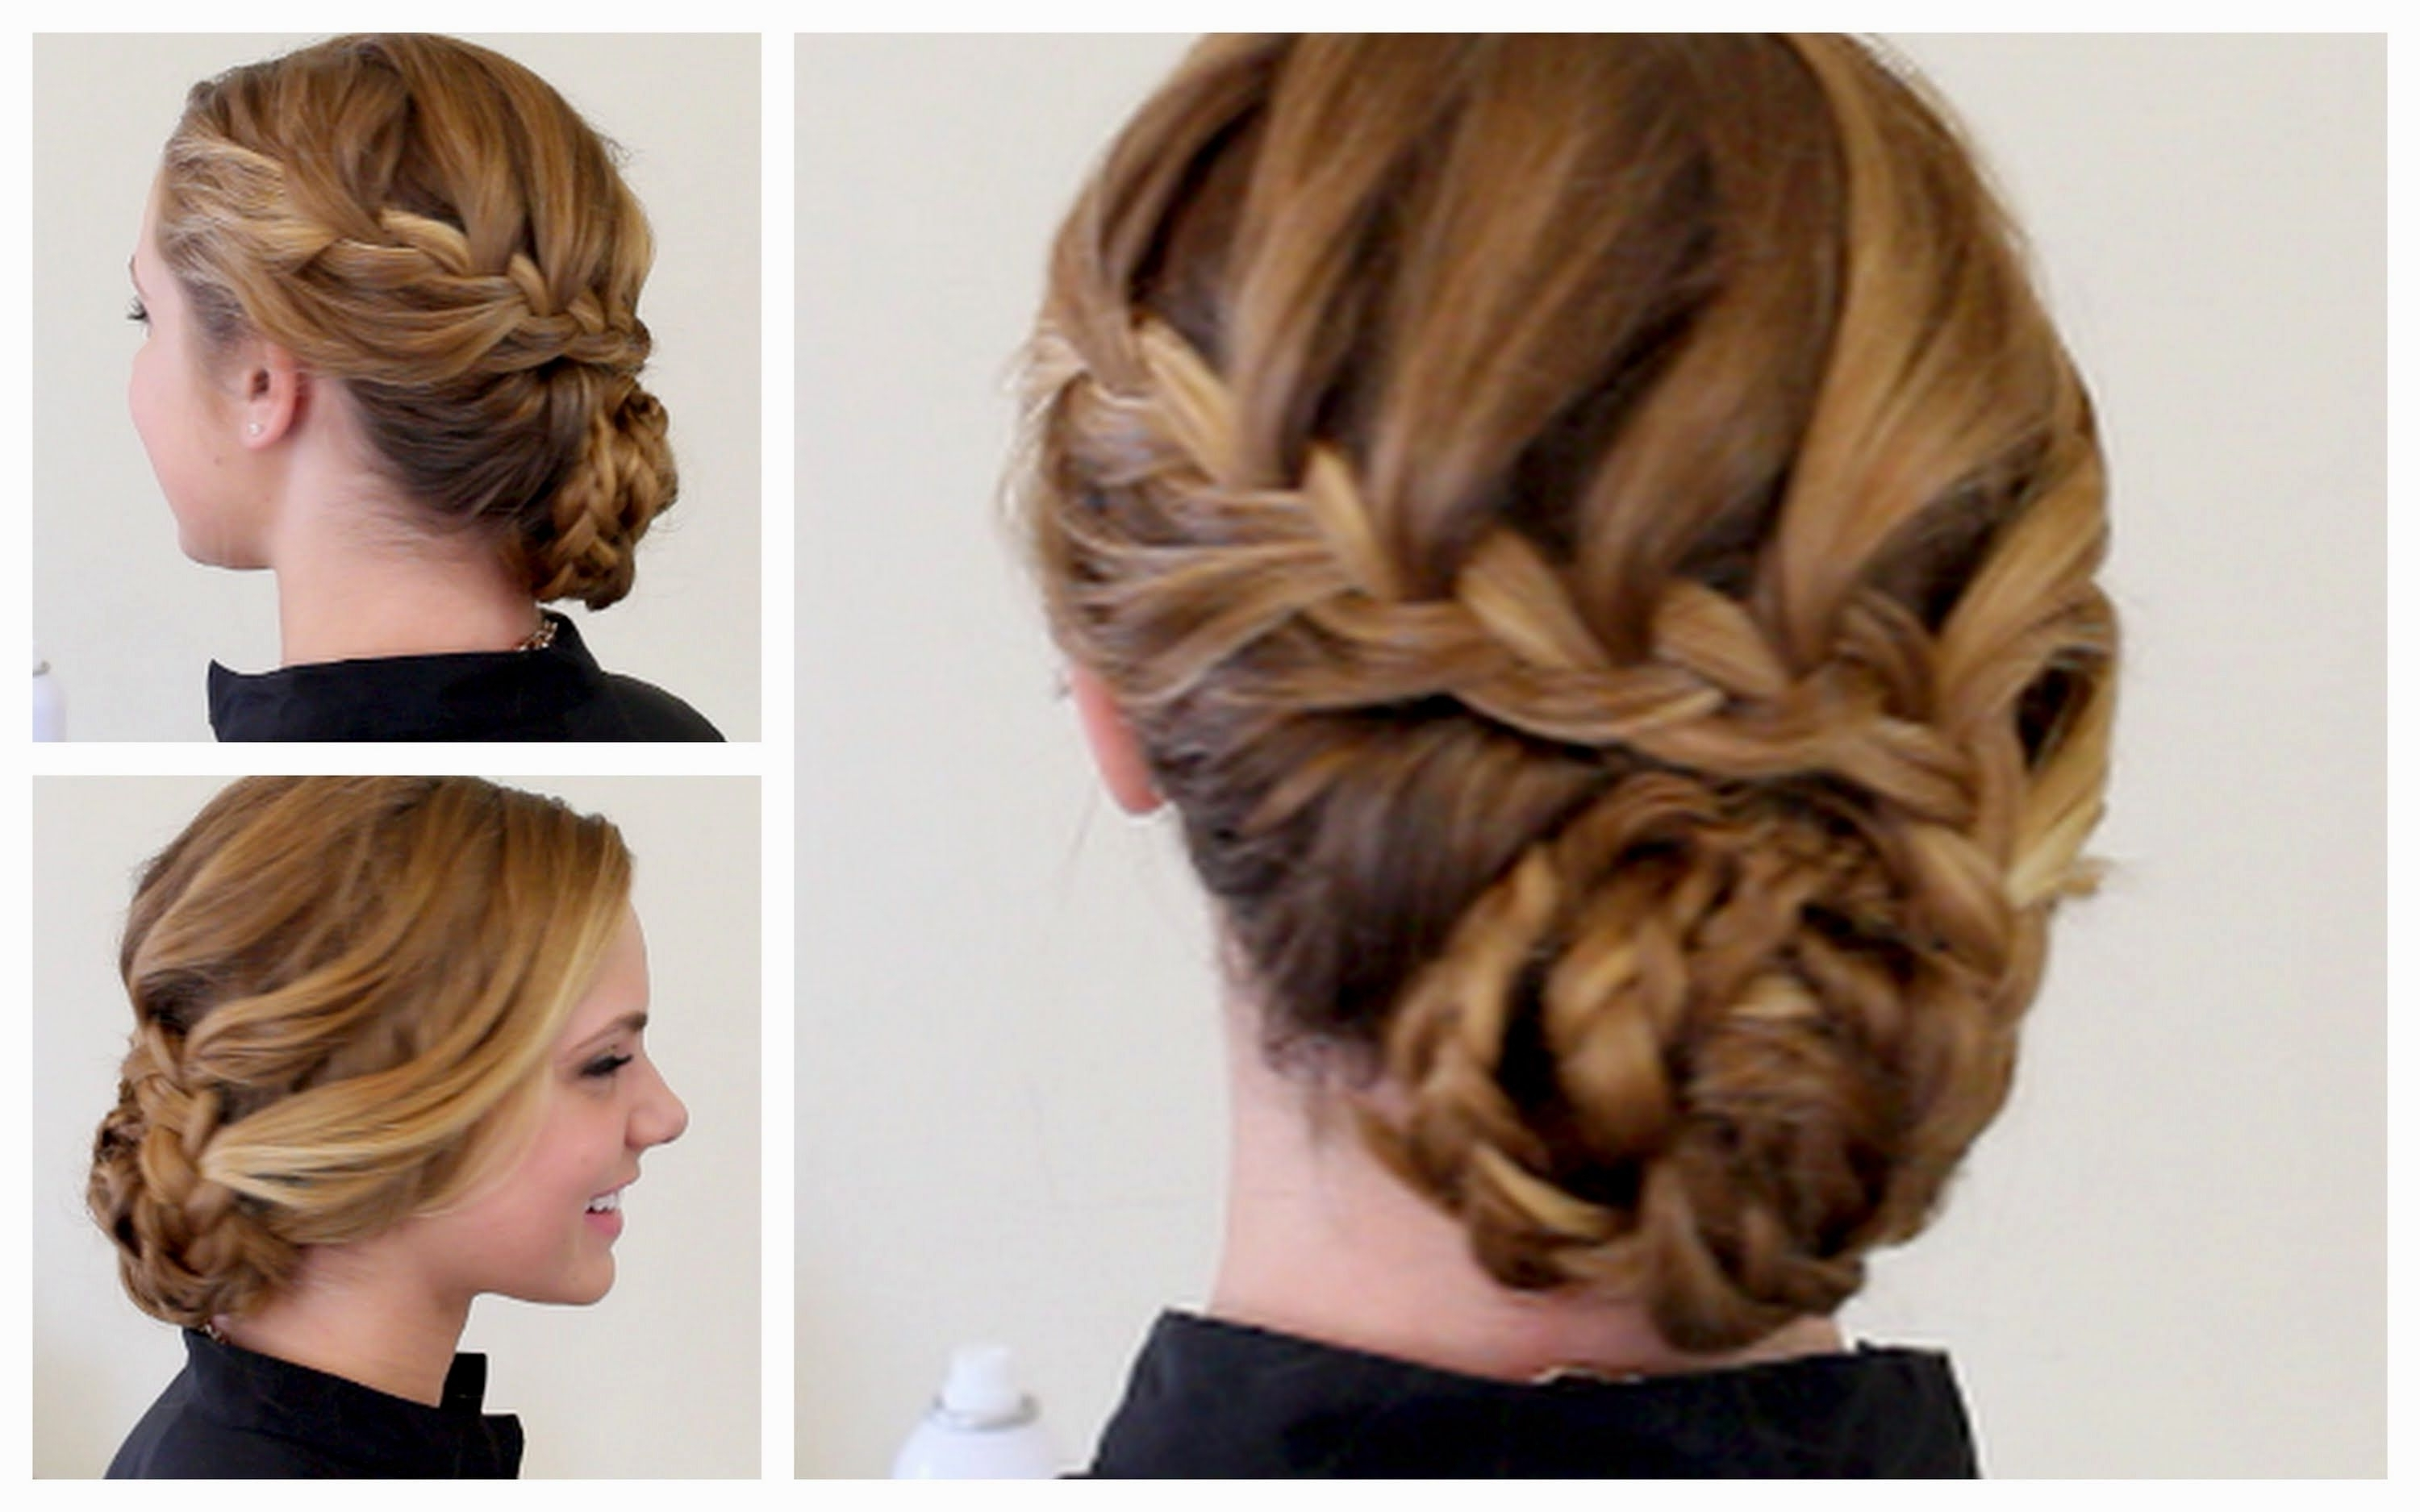 Prom Hairstyles For Medium Hair Formal Women Ideas Stock Photos Hd With Updo Hairstyles For Medium Hair (View 11 of 15)